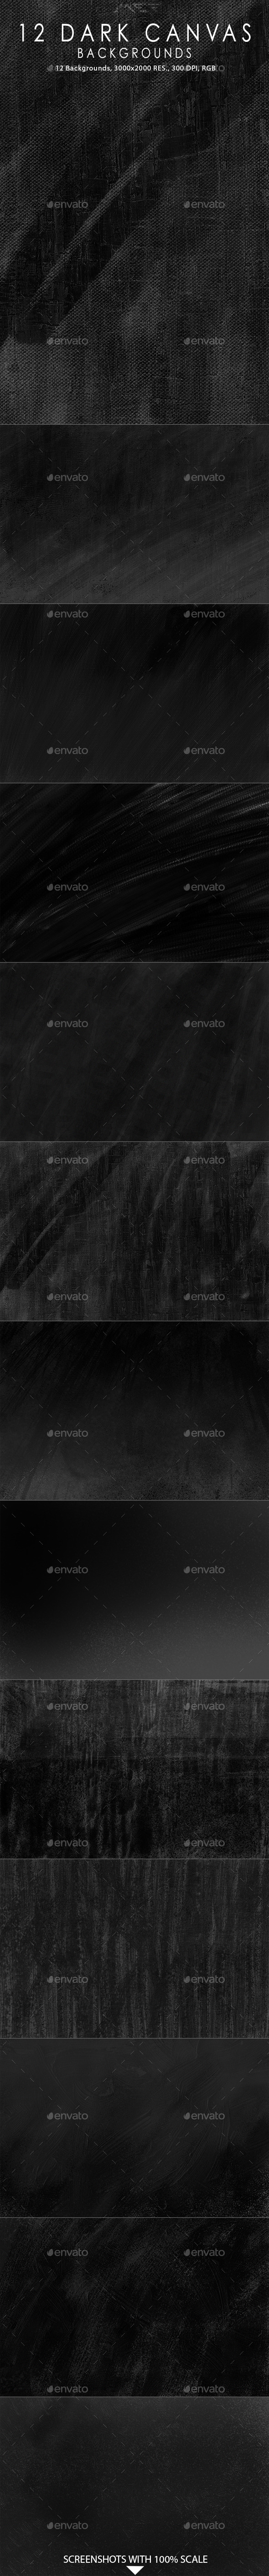 GraphicRiver 12 Dark Canvas Backgrounds 10360988